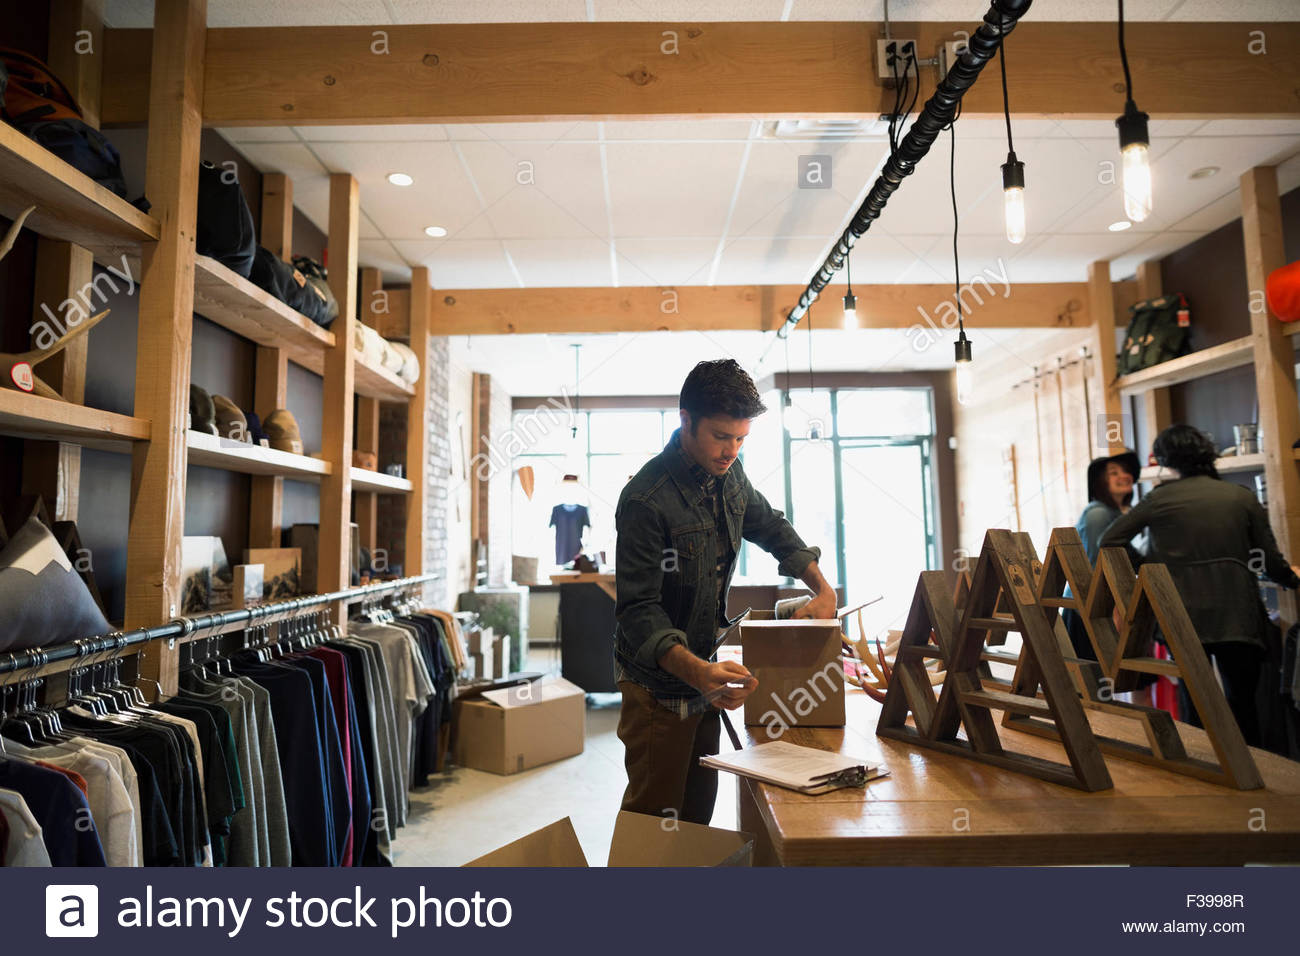 Worker unpacking new inventory in clothing shop - Stock Image